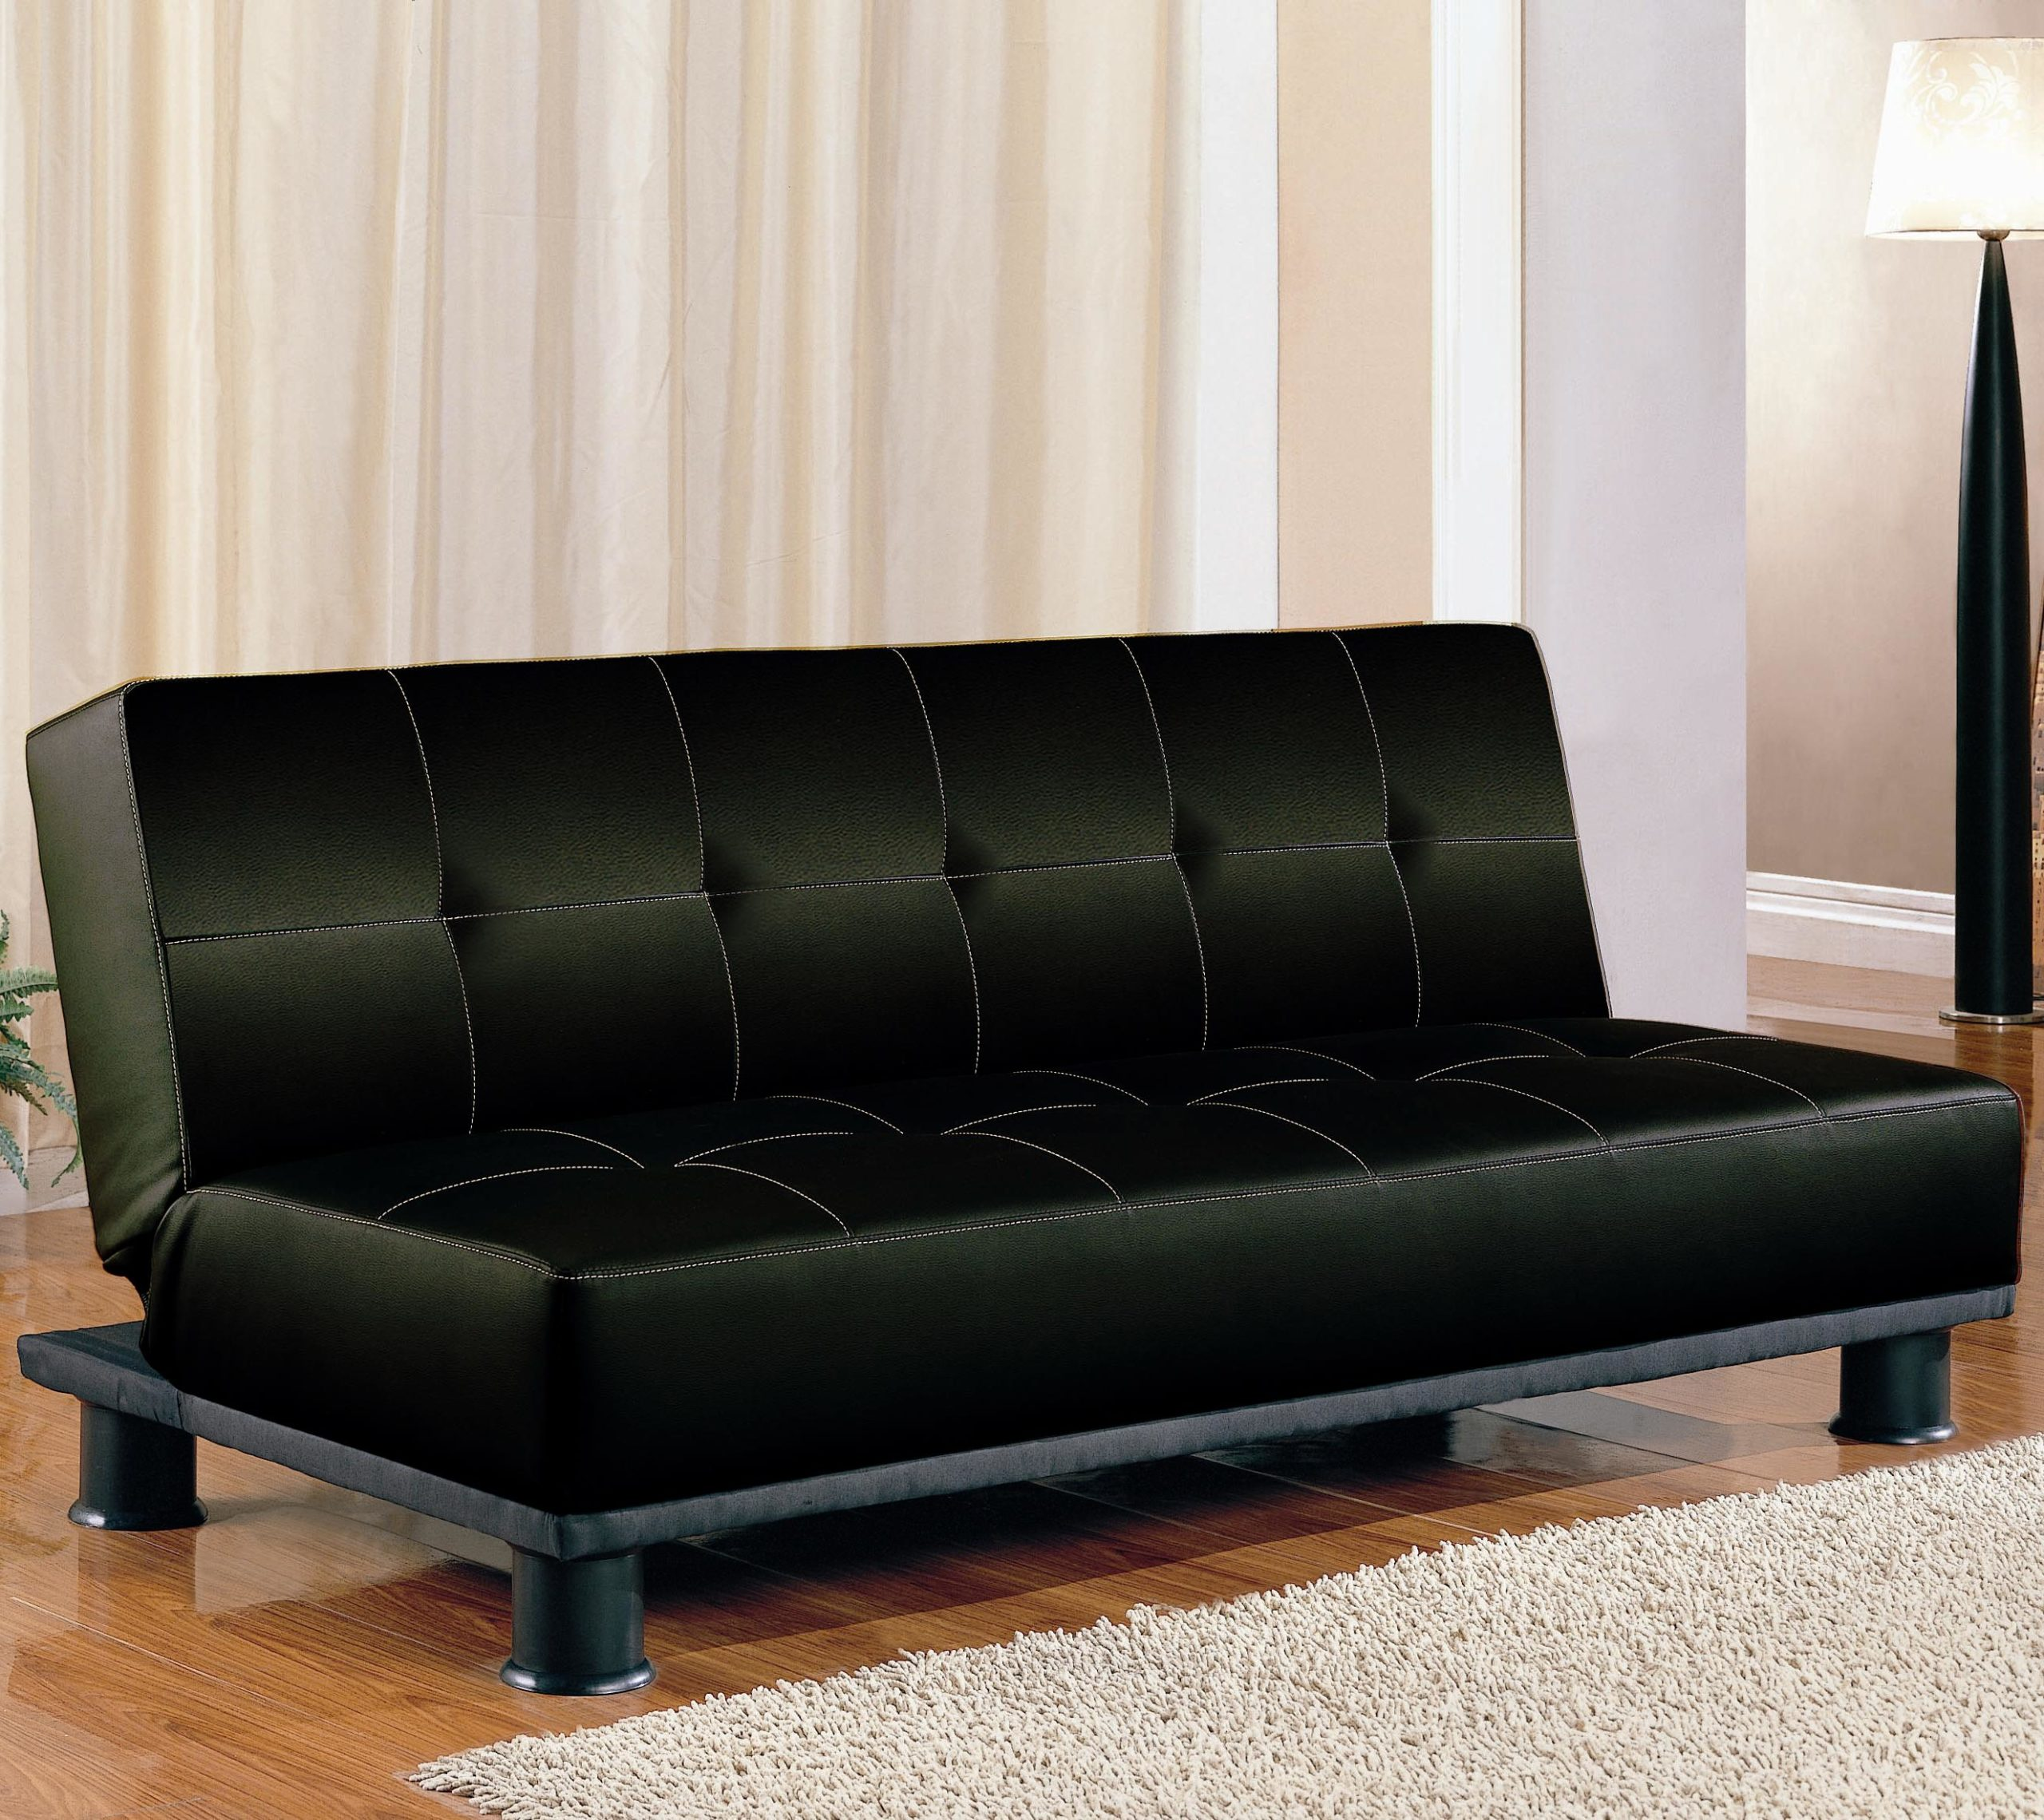 Black Contemporary Armless Convertible Sofa Bed Up Position